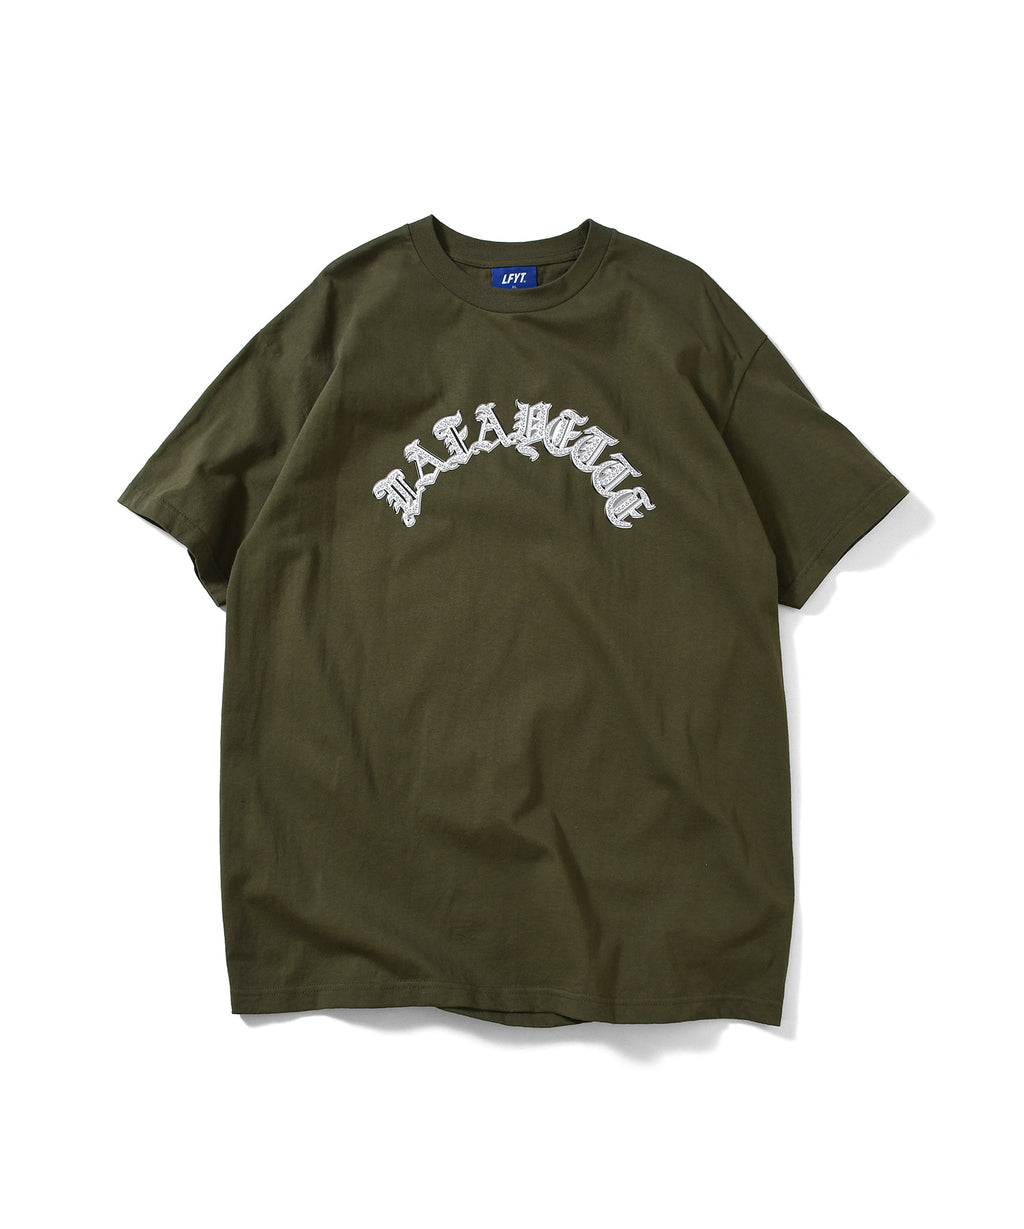 BLING LAFAYETTE ARCH LOGO TEE MILITARY LS210105 GREEN